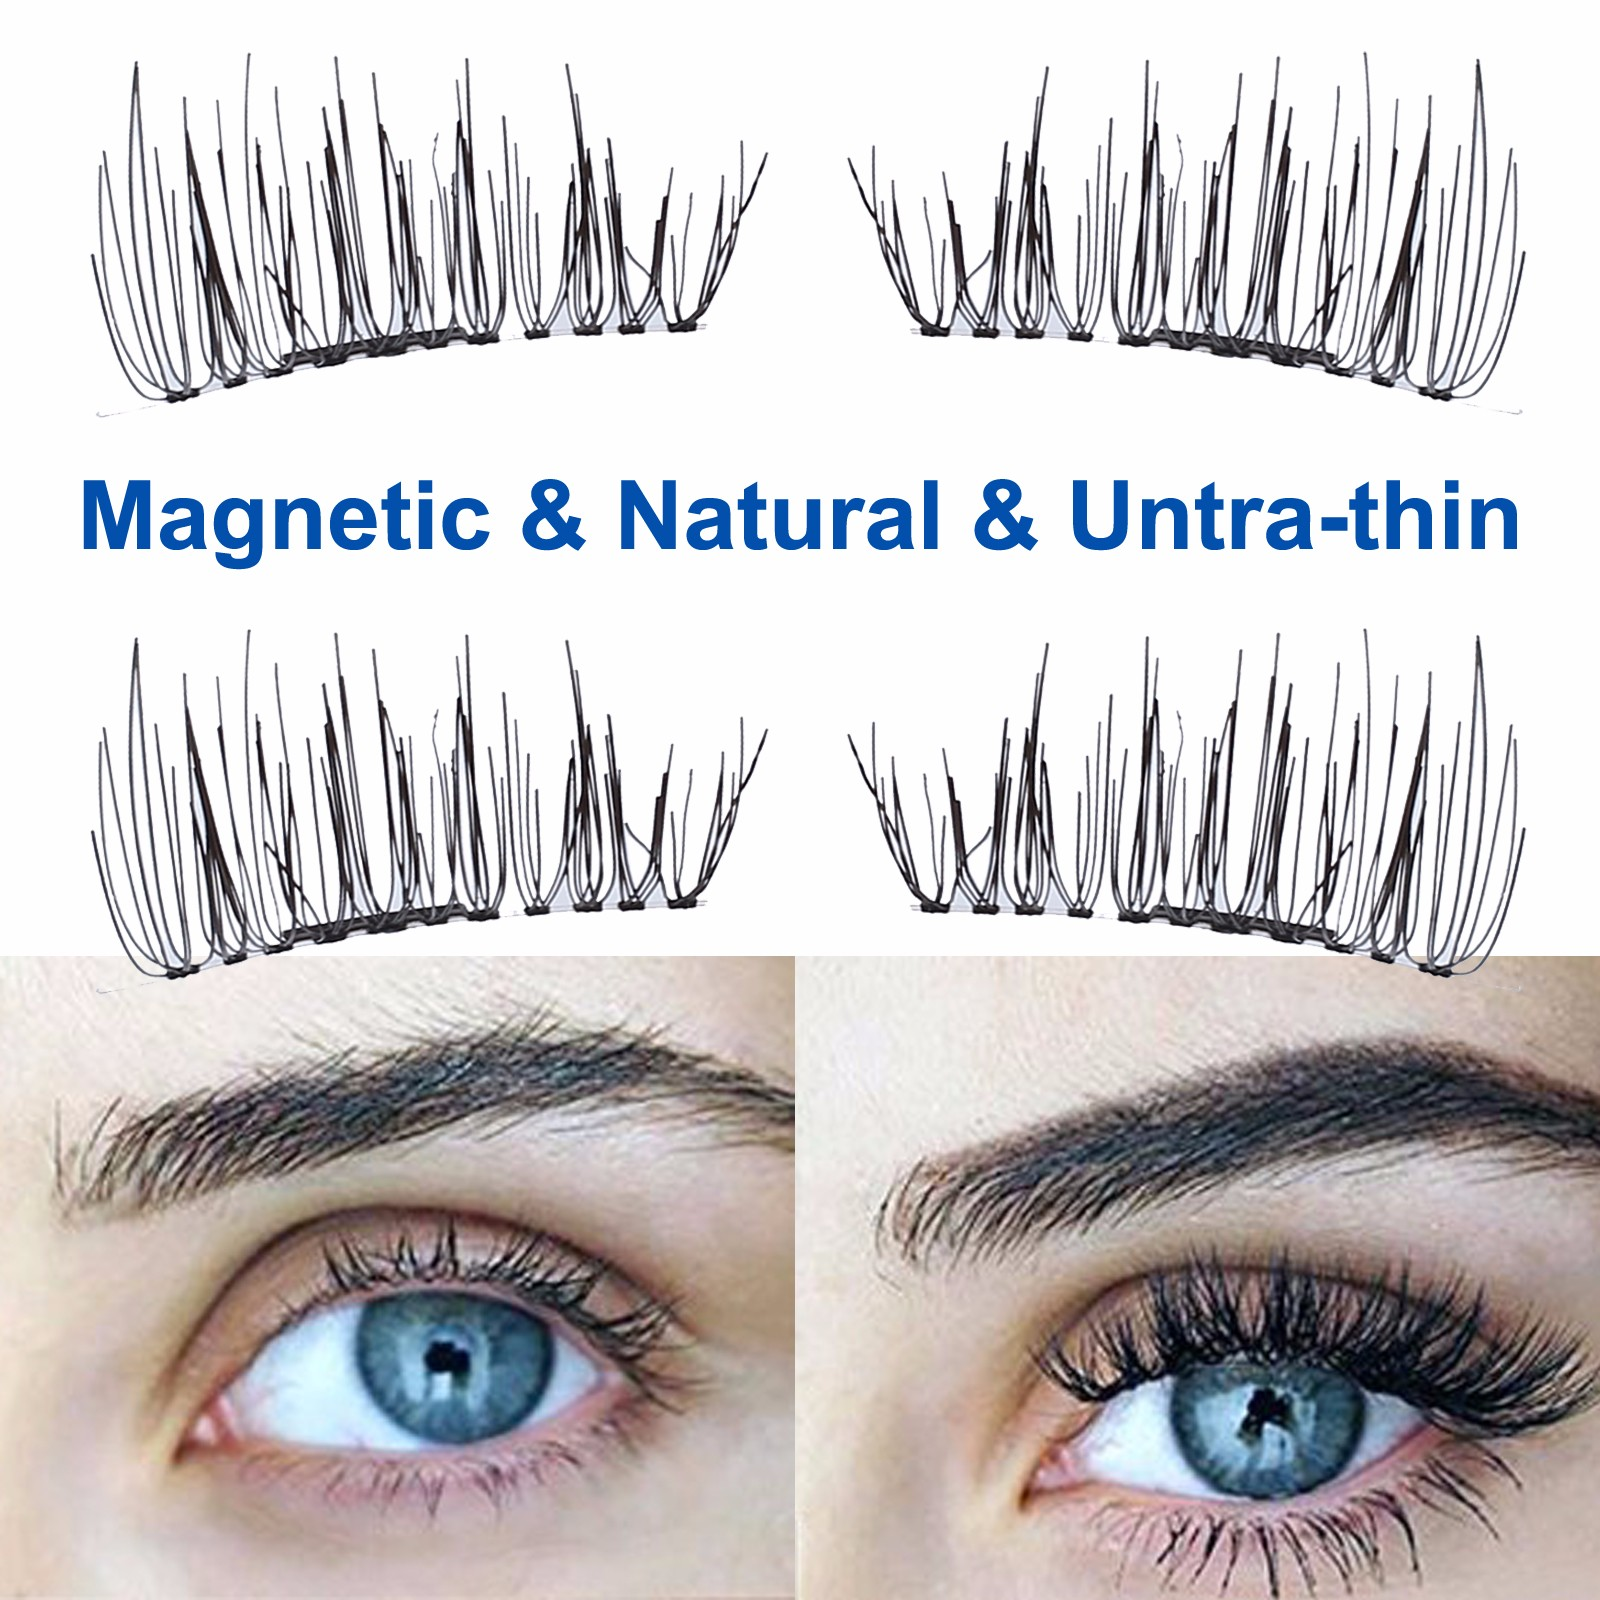 4Pcs Magnetic Eyelashes 3D Magnetic False Eyelashes Ultra Thin Natural Eye Lashes Extension Lightweight Natural Thick Eye Lashes Handmade False Eyelashes Tool + Case